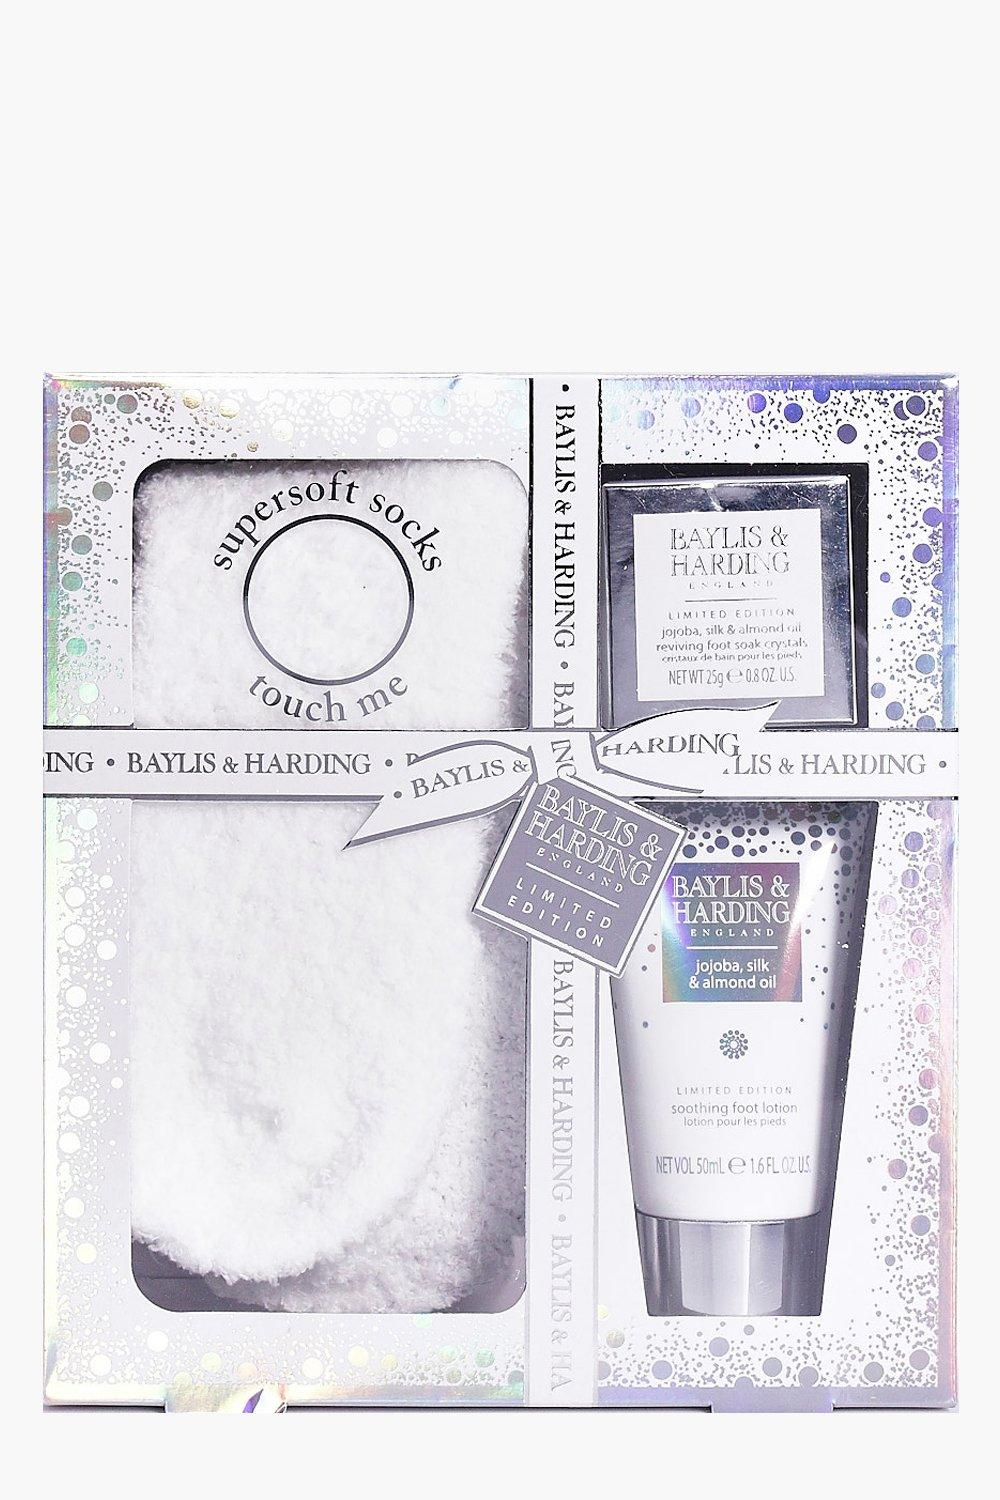 Foot Lotion, Crystals & Socks Gift Set